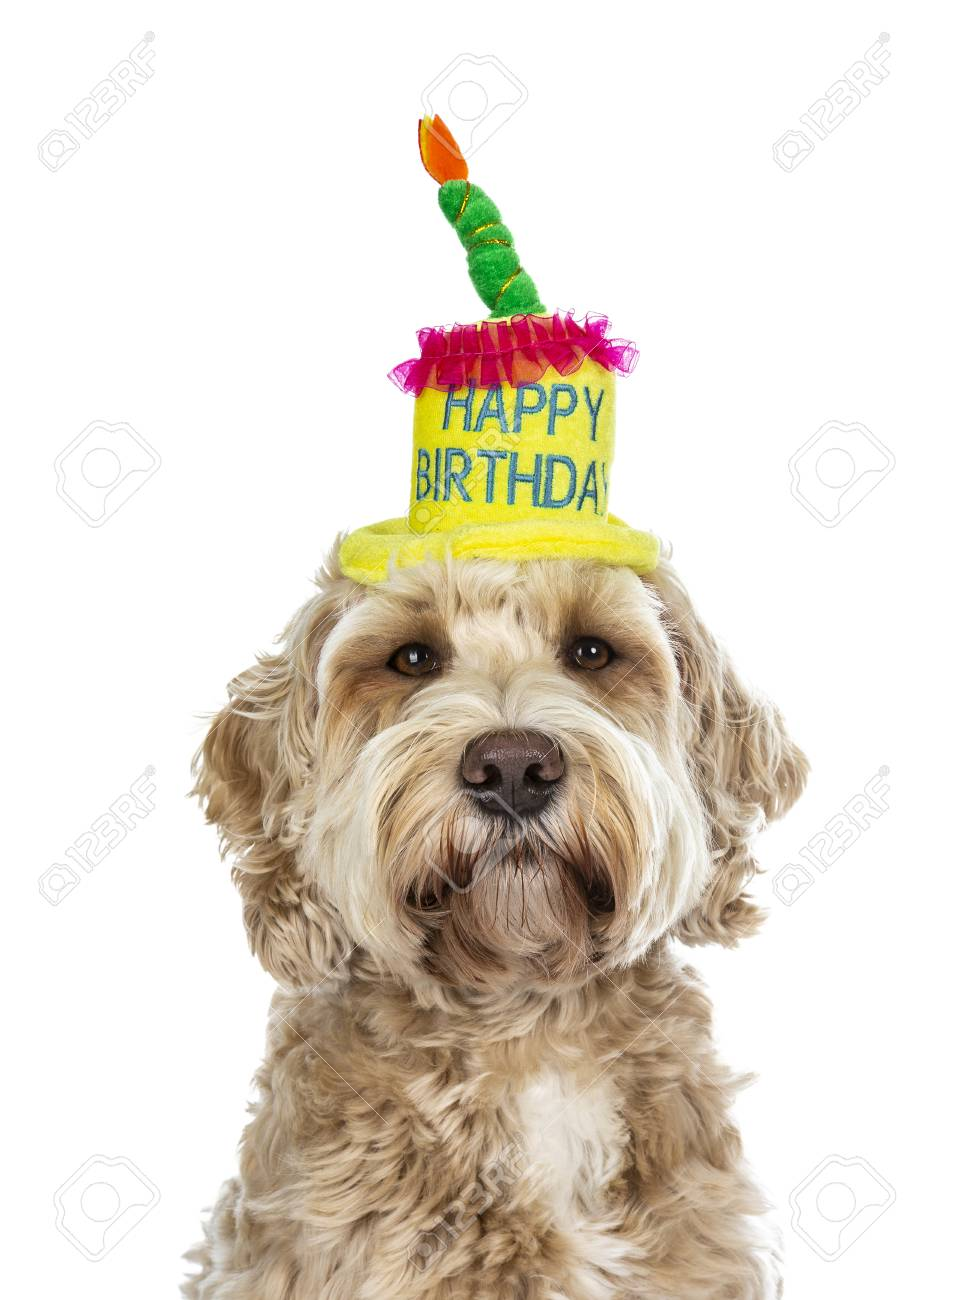 Head Shot Of Pretty Golden Adult Labradoodle Dog Wearing A Happy Birthday Cake Hat Looking Straight